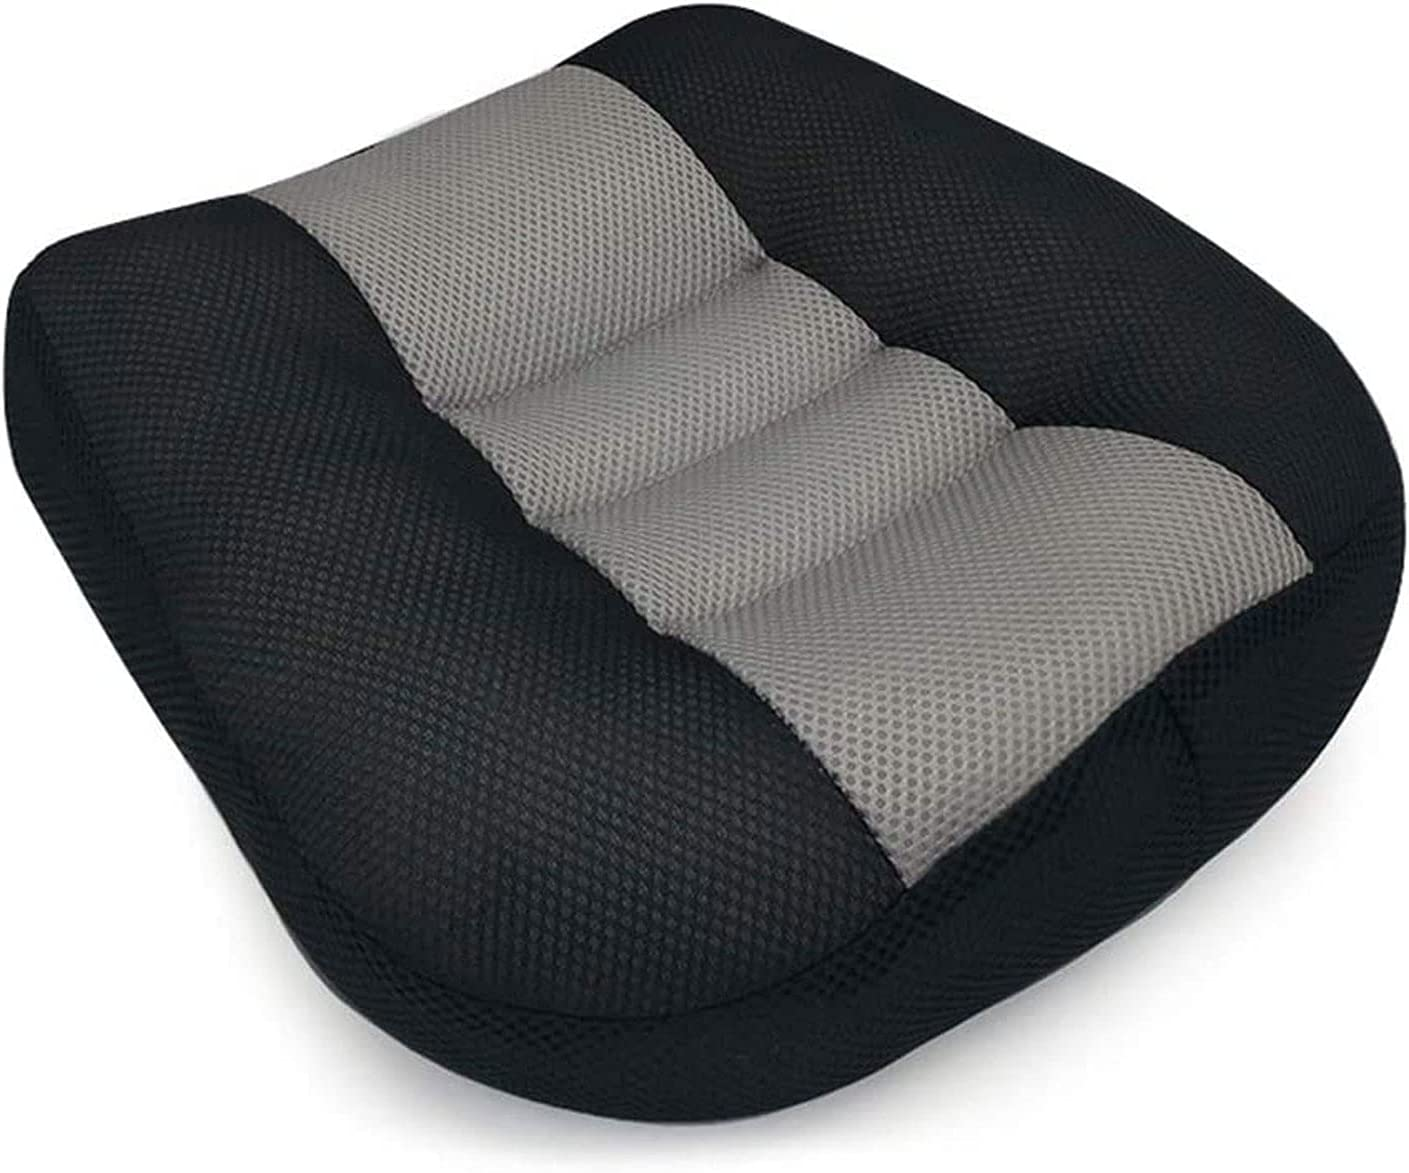 Car Booster Seat for Driver Adult Cushions Heightening Height Boost Mat, Breathable Mesh Portable Adult Car Booster Seat for Short Drivers Ideal for Car, Office, Home (blackgray)